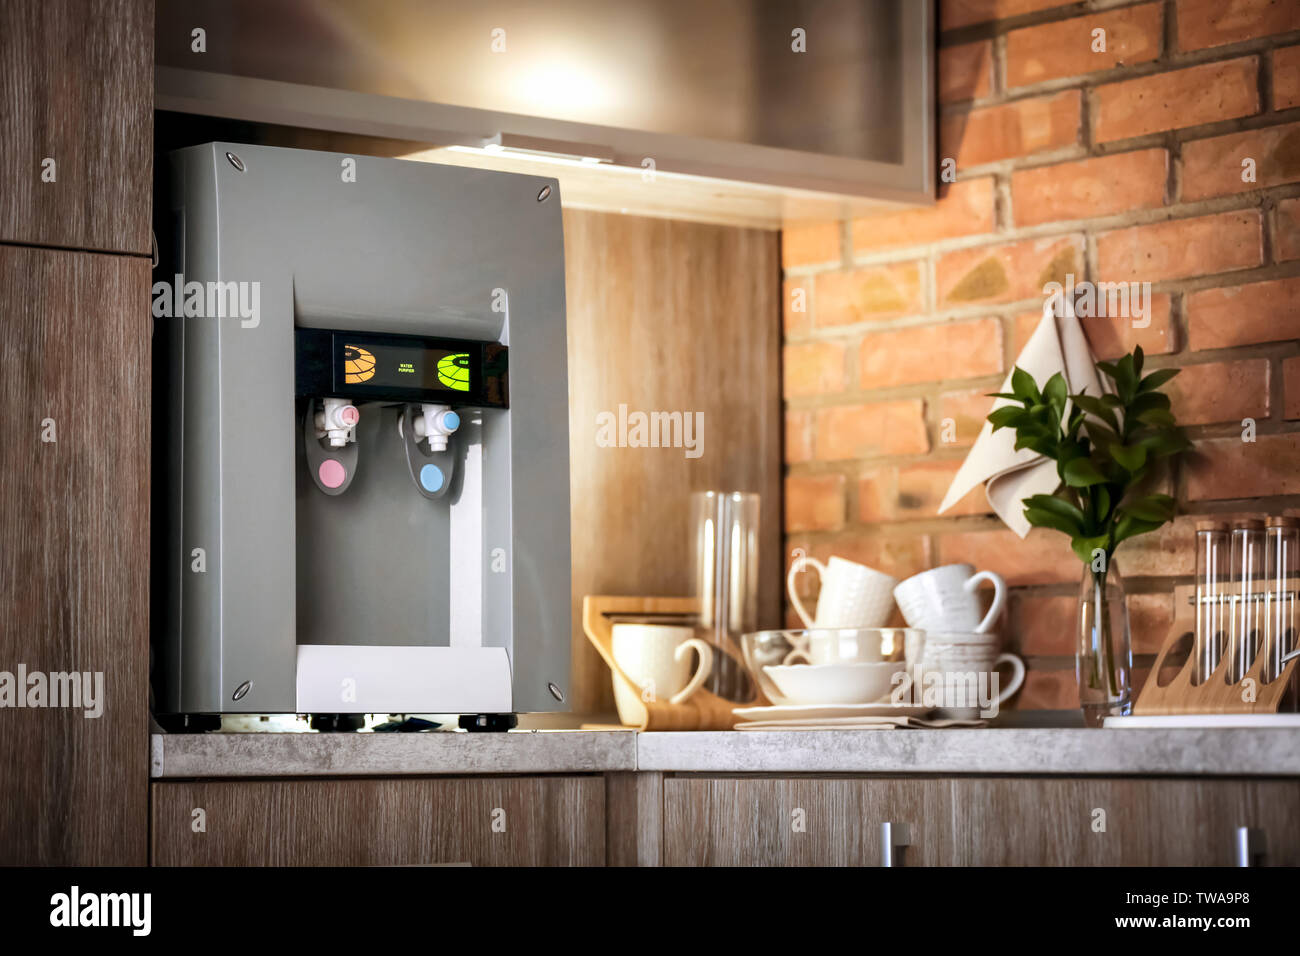 Modern water cooler on kitchen counter - Stock Image